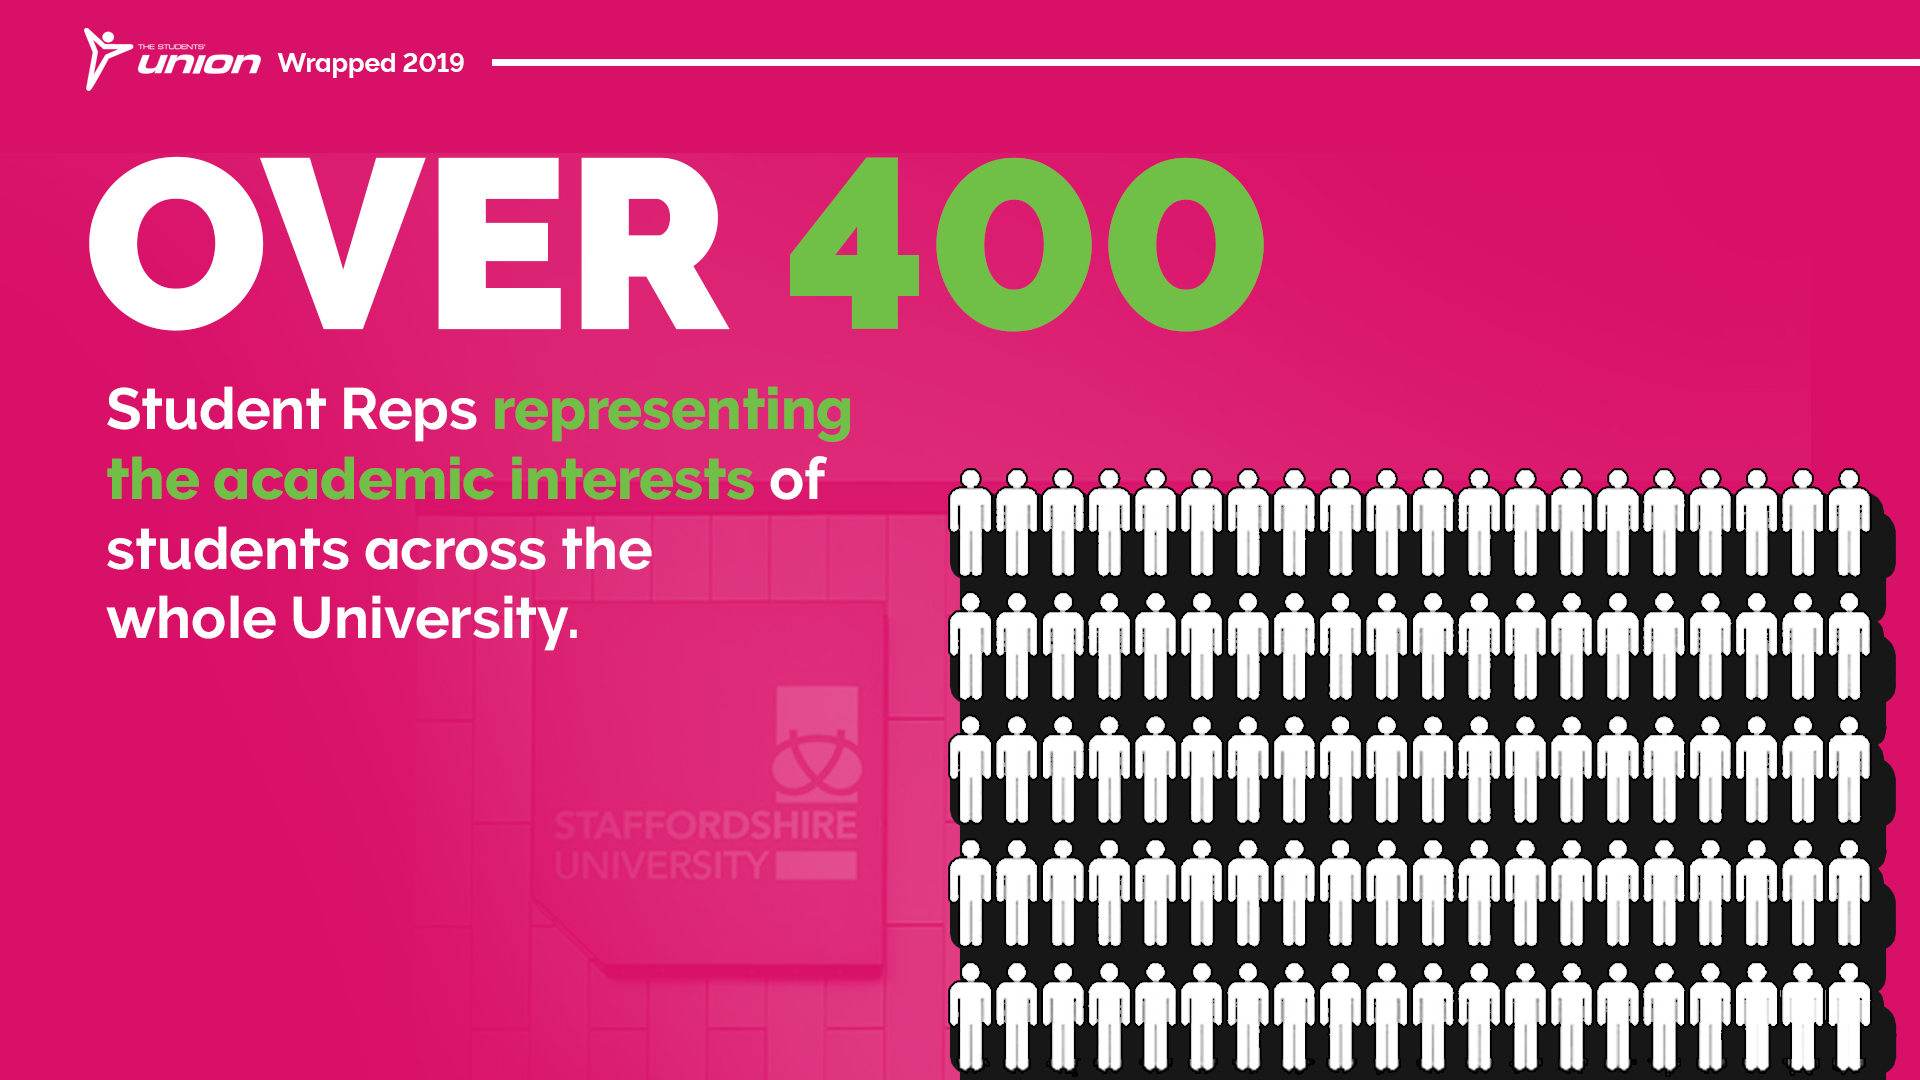 Over 400 student reps representing the academic interests of students across the whole University.